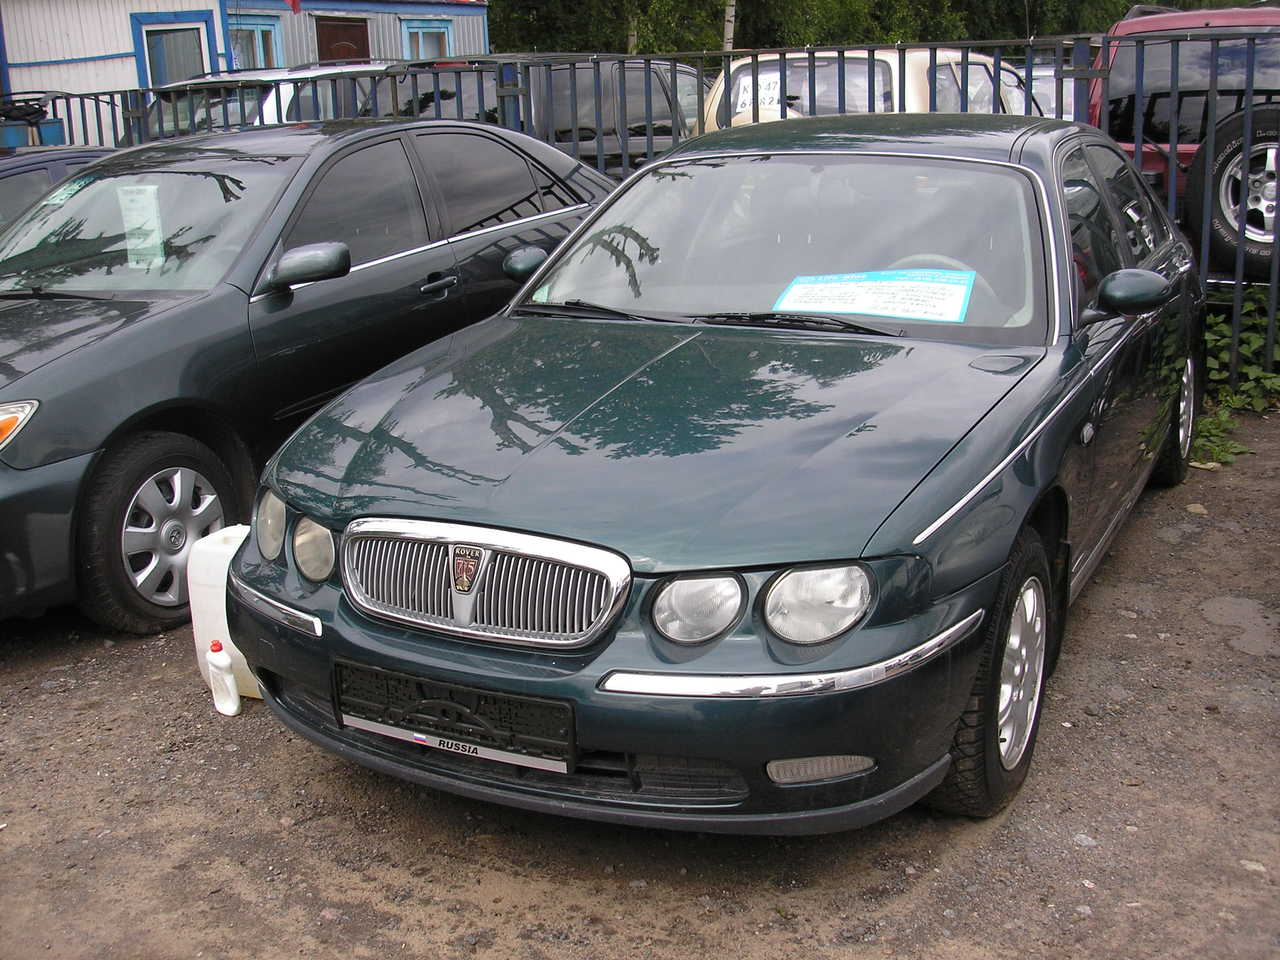 2000 rover 75 photos 2 5 gasoline ff automatic for sale. Black Bedroom Furniture Sets. Home Design Ideas